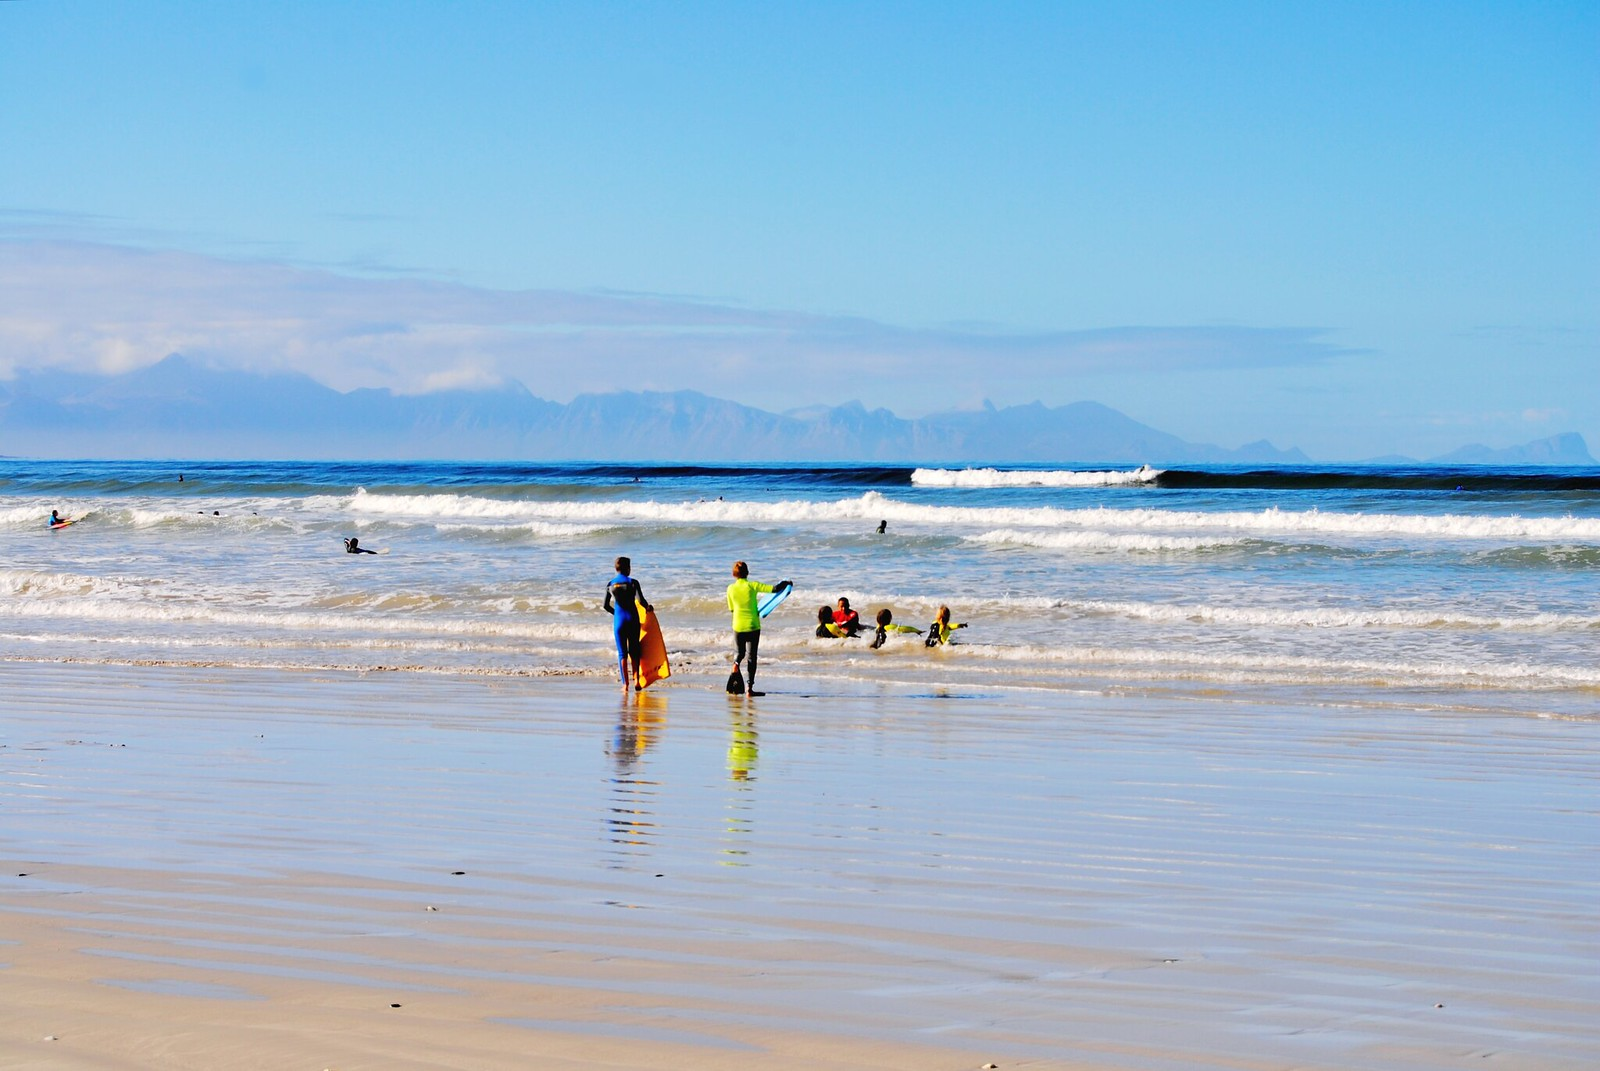 Surfing at Muizenberg Beach, South Africa.